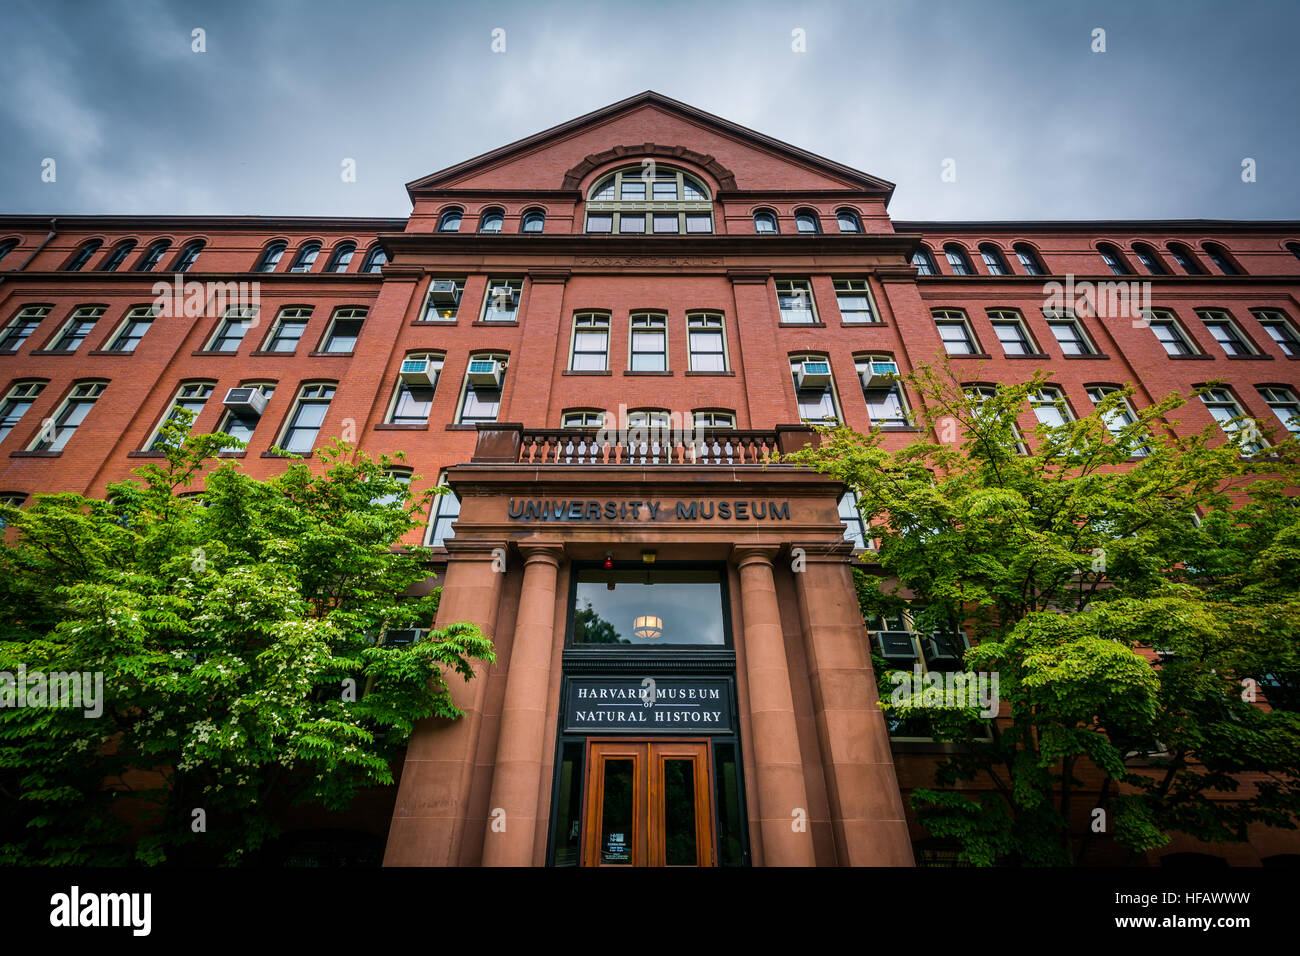 The Harvard Museum of Natural History, in Cambridge, Massachusetts. Stock Photo